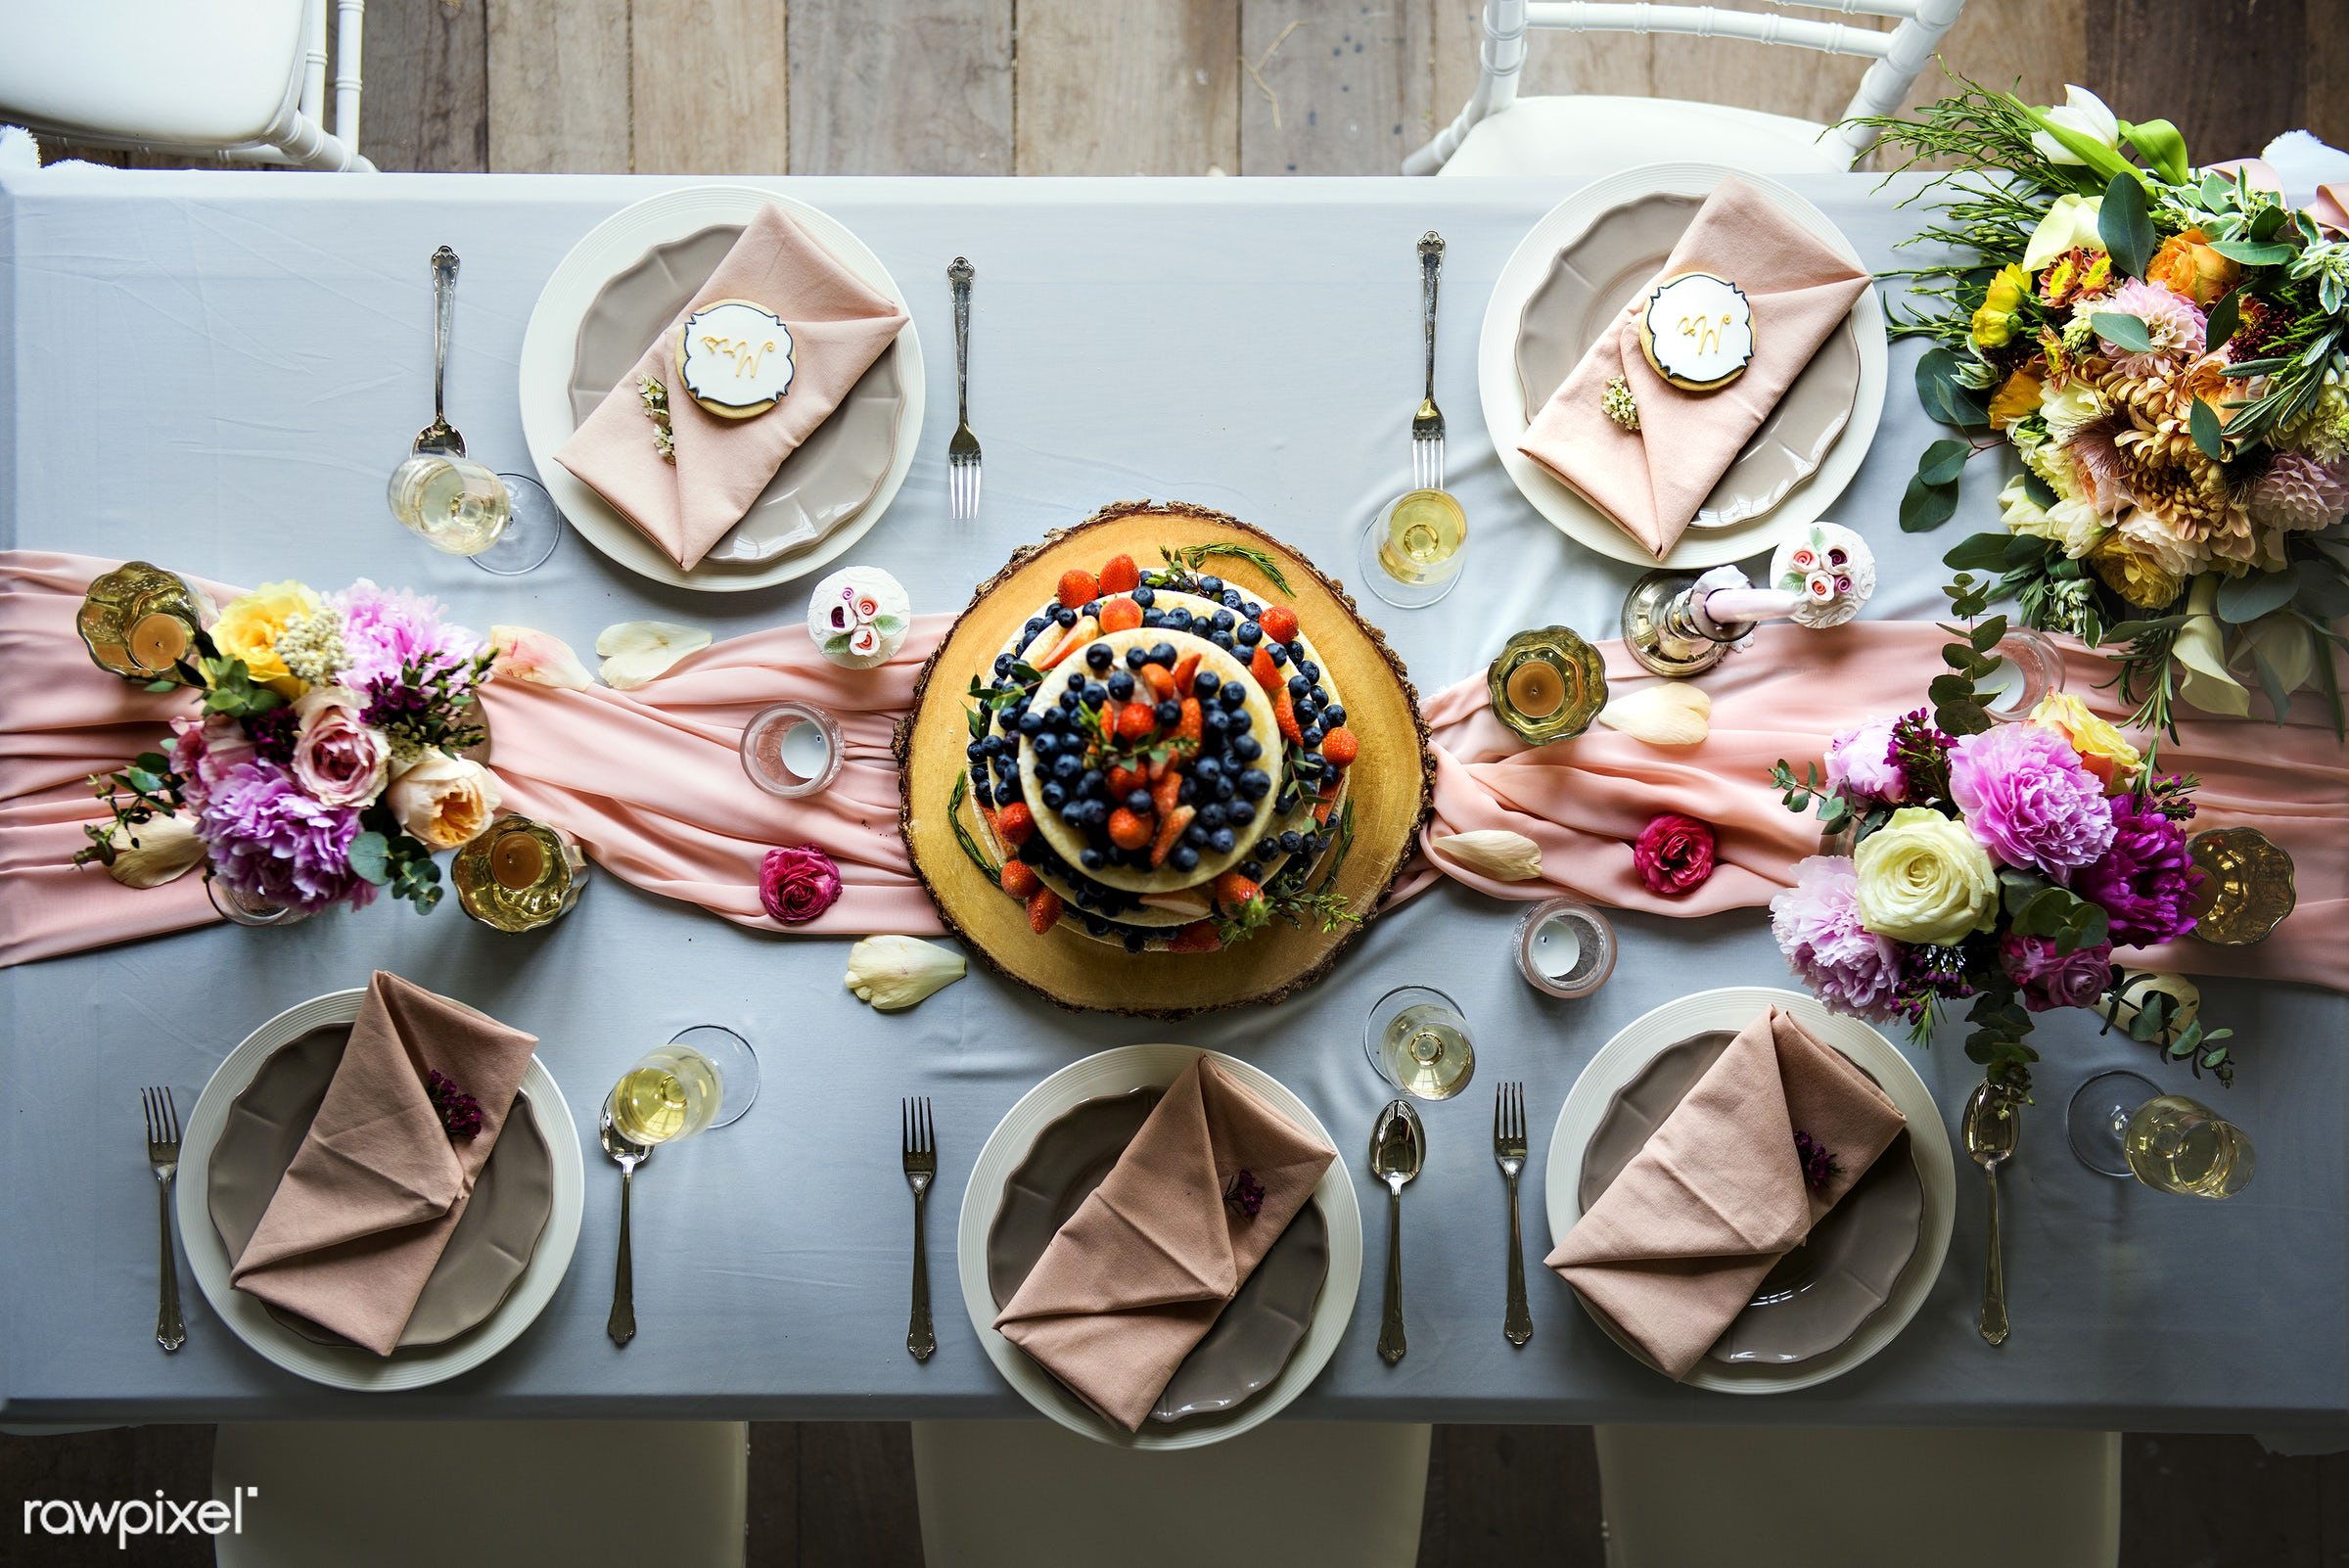 nobody, blue cloth, bouquet, detail, top view, flatlay, paper, cutlery, restaurant, party, bakery, banquet, aerial view,...